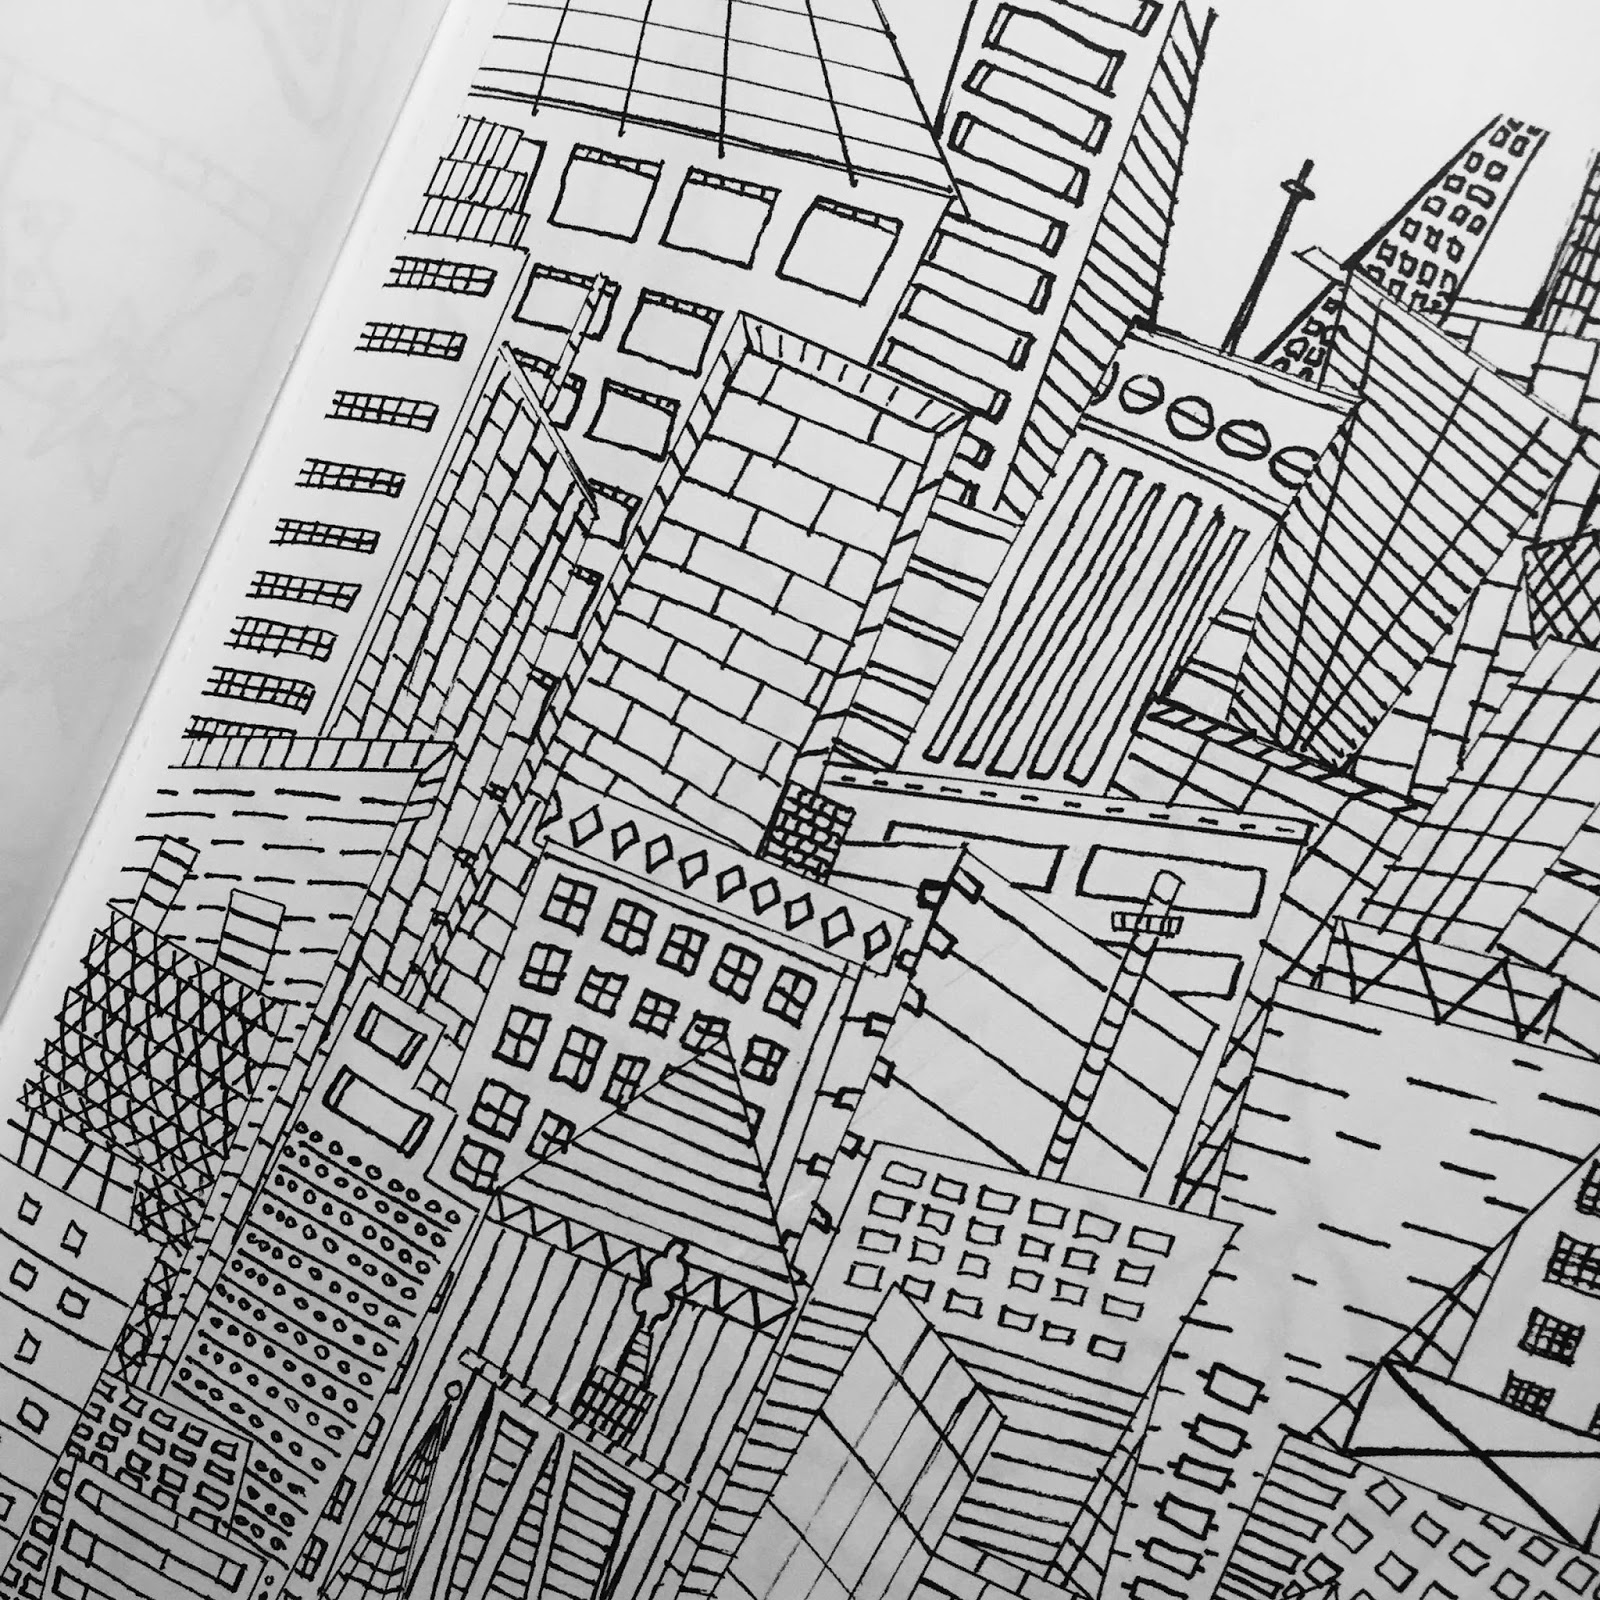 I Am Thrilled To Have A Drawing Included In The Scenes Section It Is An Ode My Home New York City Check Out Glimpse Below